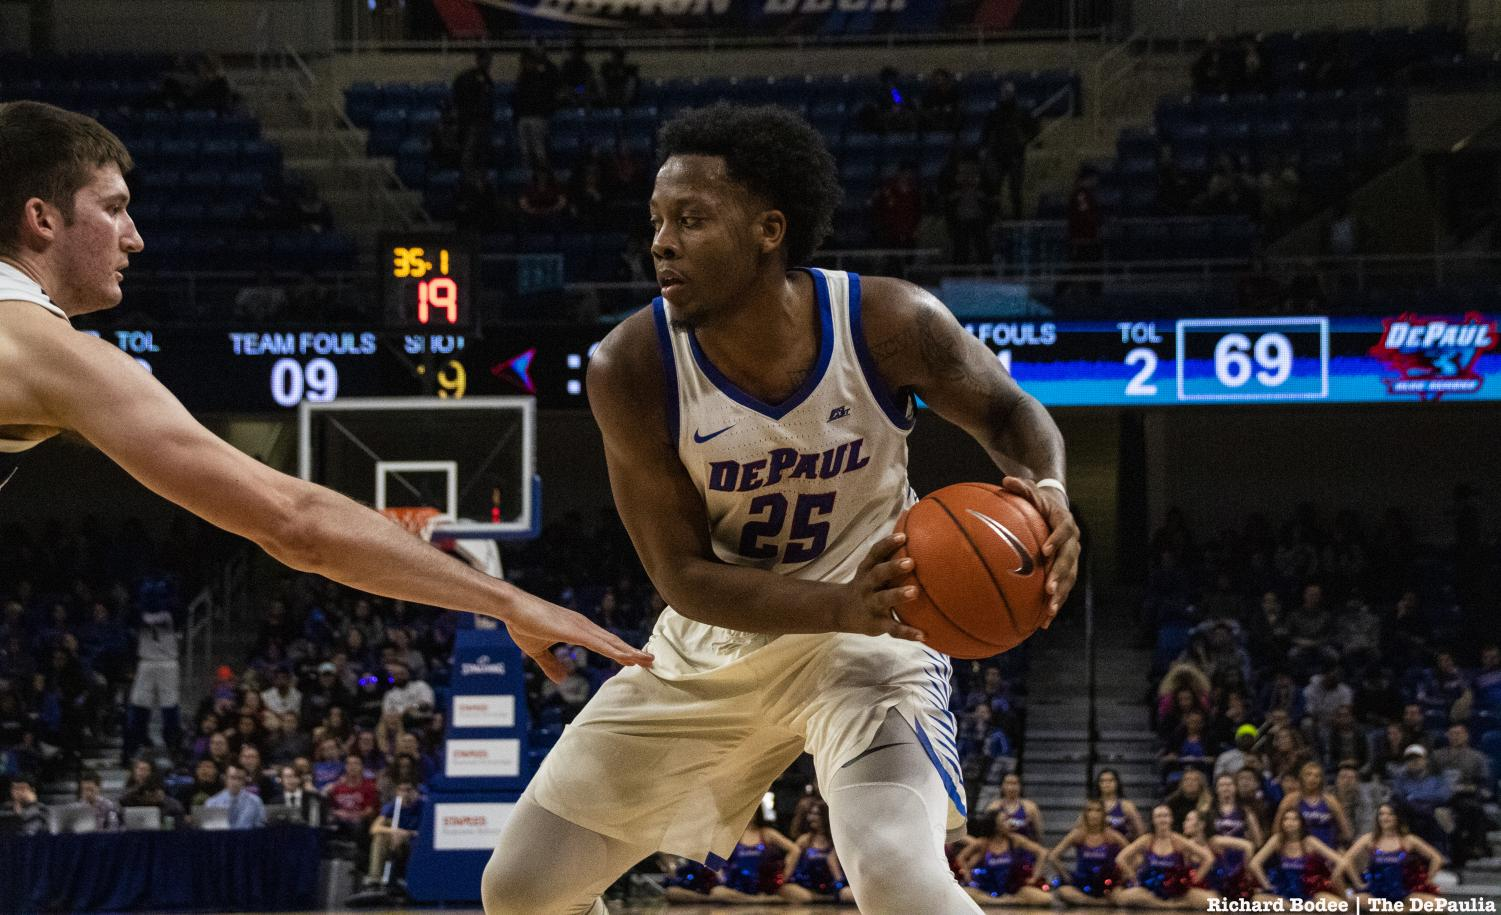 Senior+Olujobi+matches+up+against+a+Butler+defender+during+the+second+half+of+DePaul%27s+loss+to+Butler+Wednesday+night+at+Wintrust+Arena.+Richard+Bodee+%7C+The+DePaulia